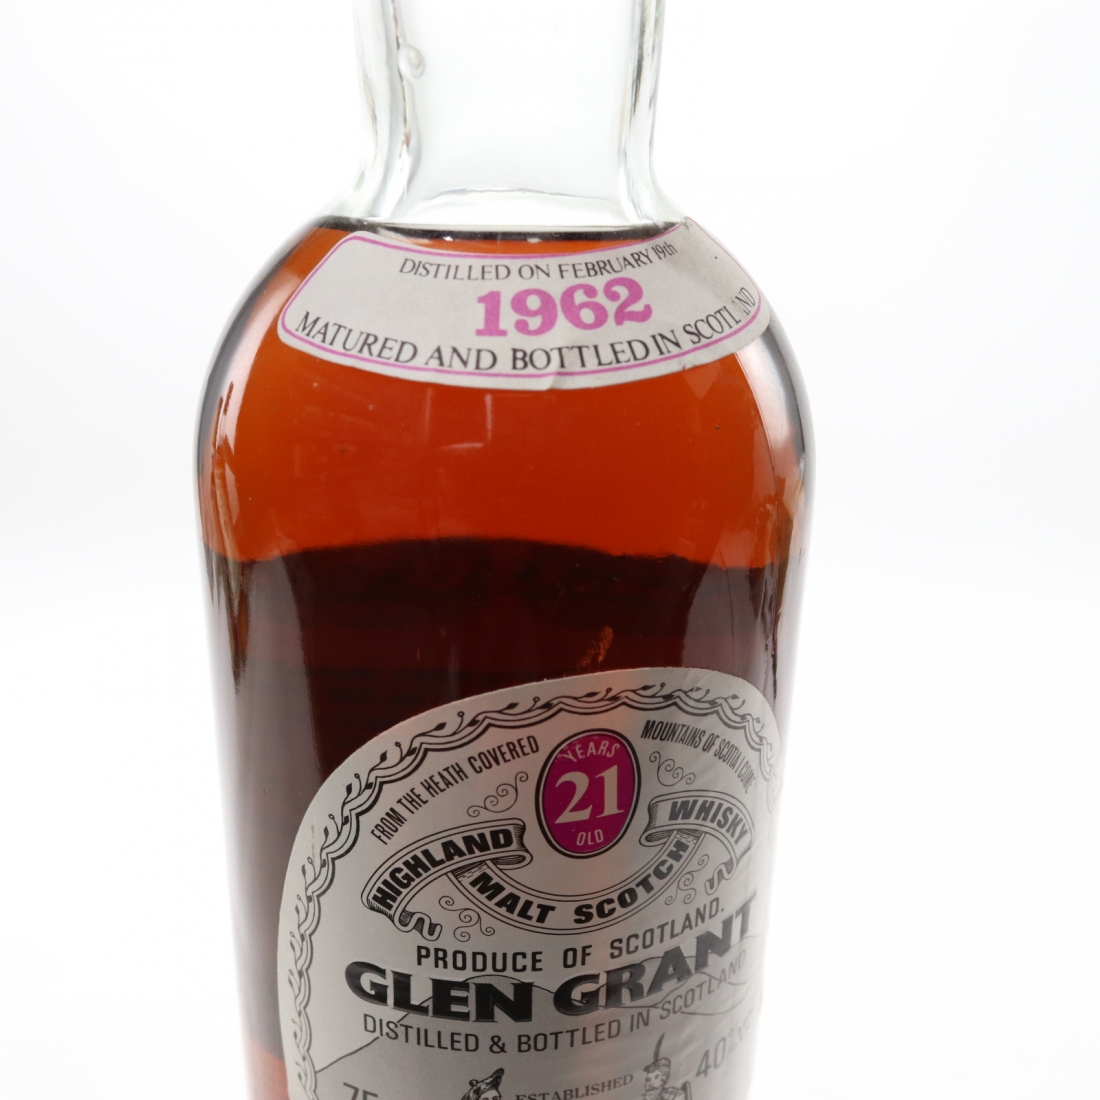 Glen Grant 1962 Gordon and MacPhail